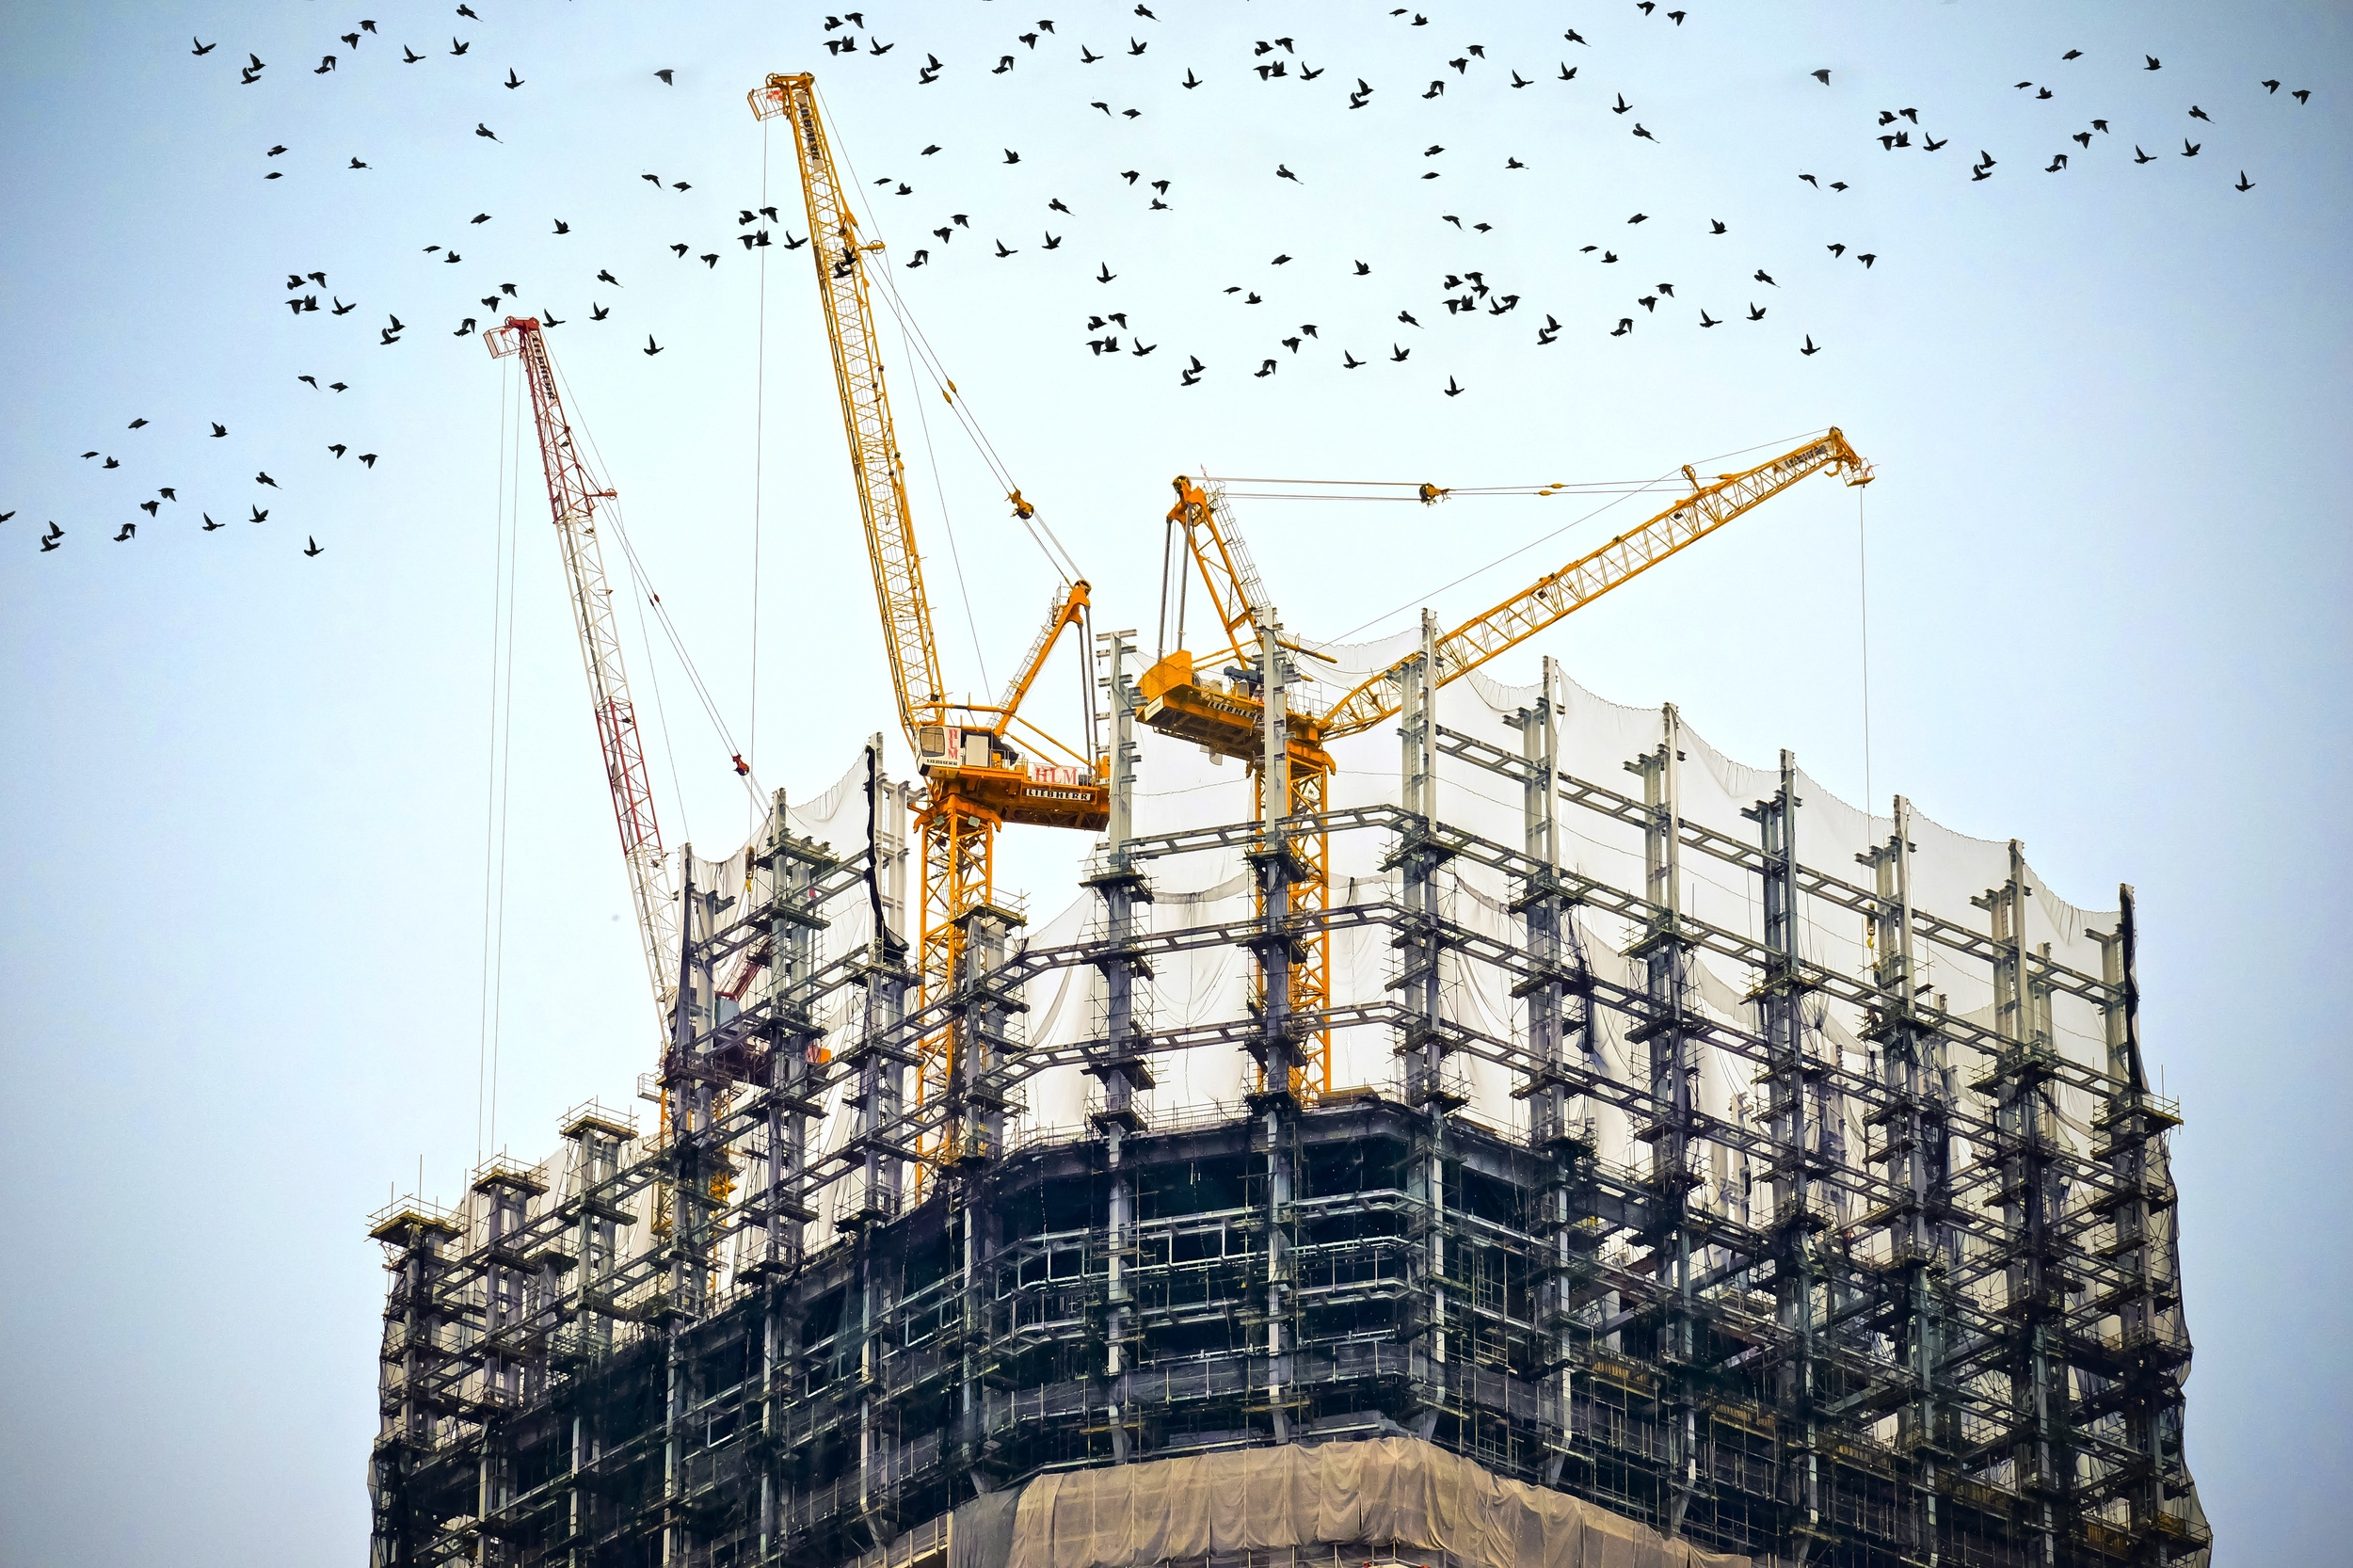 cranes and construction